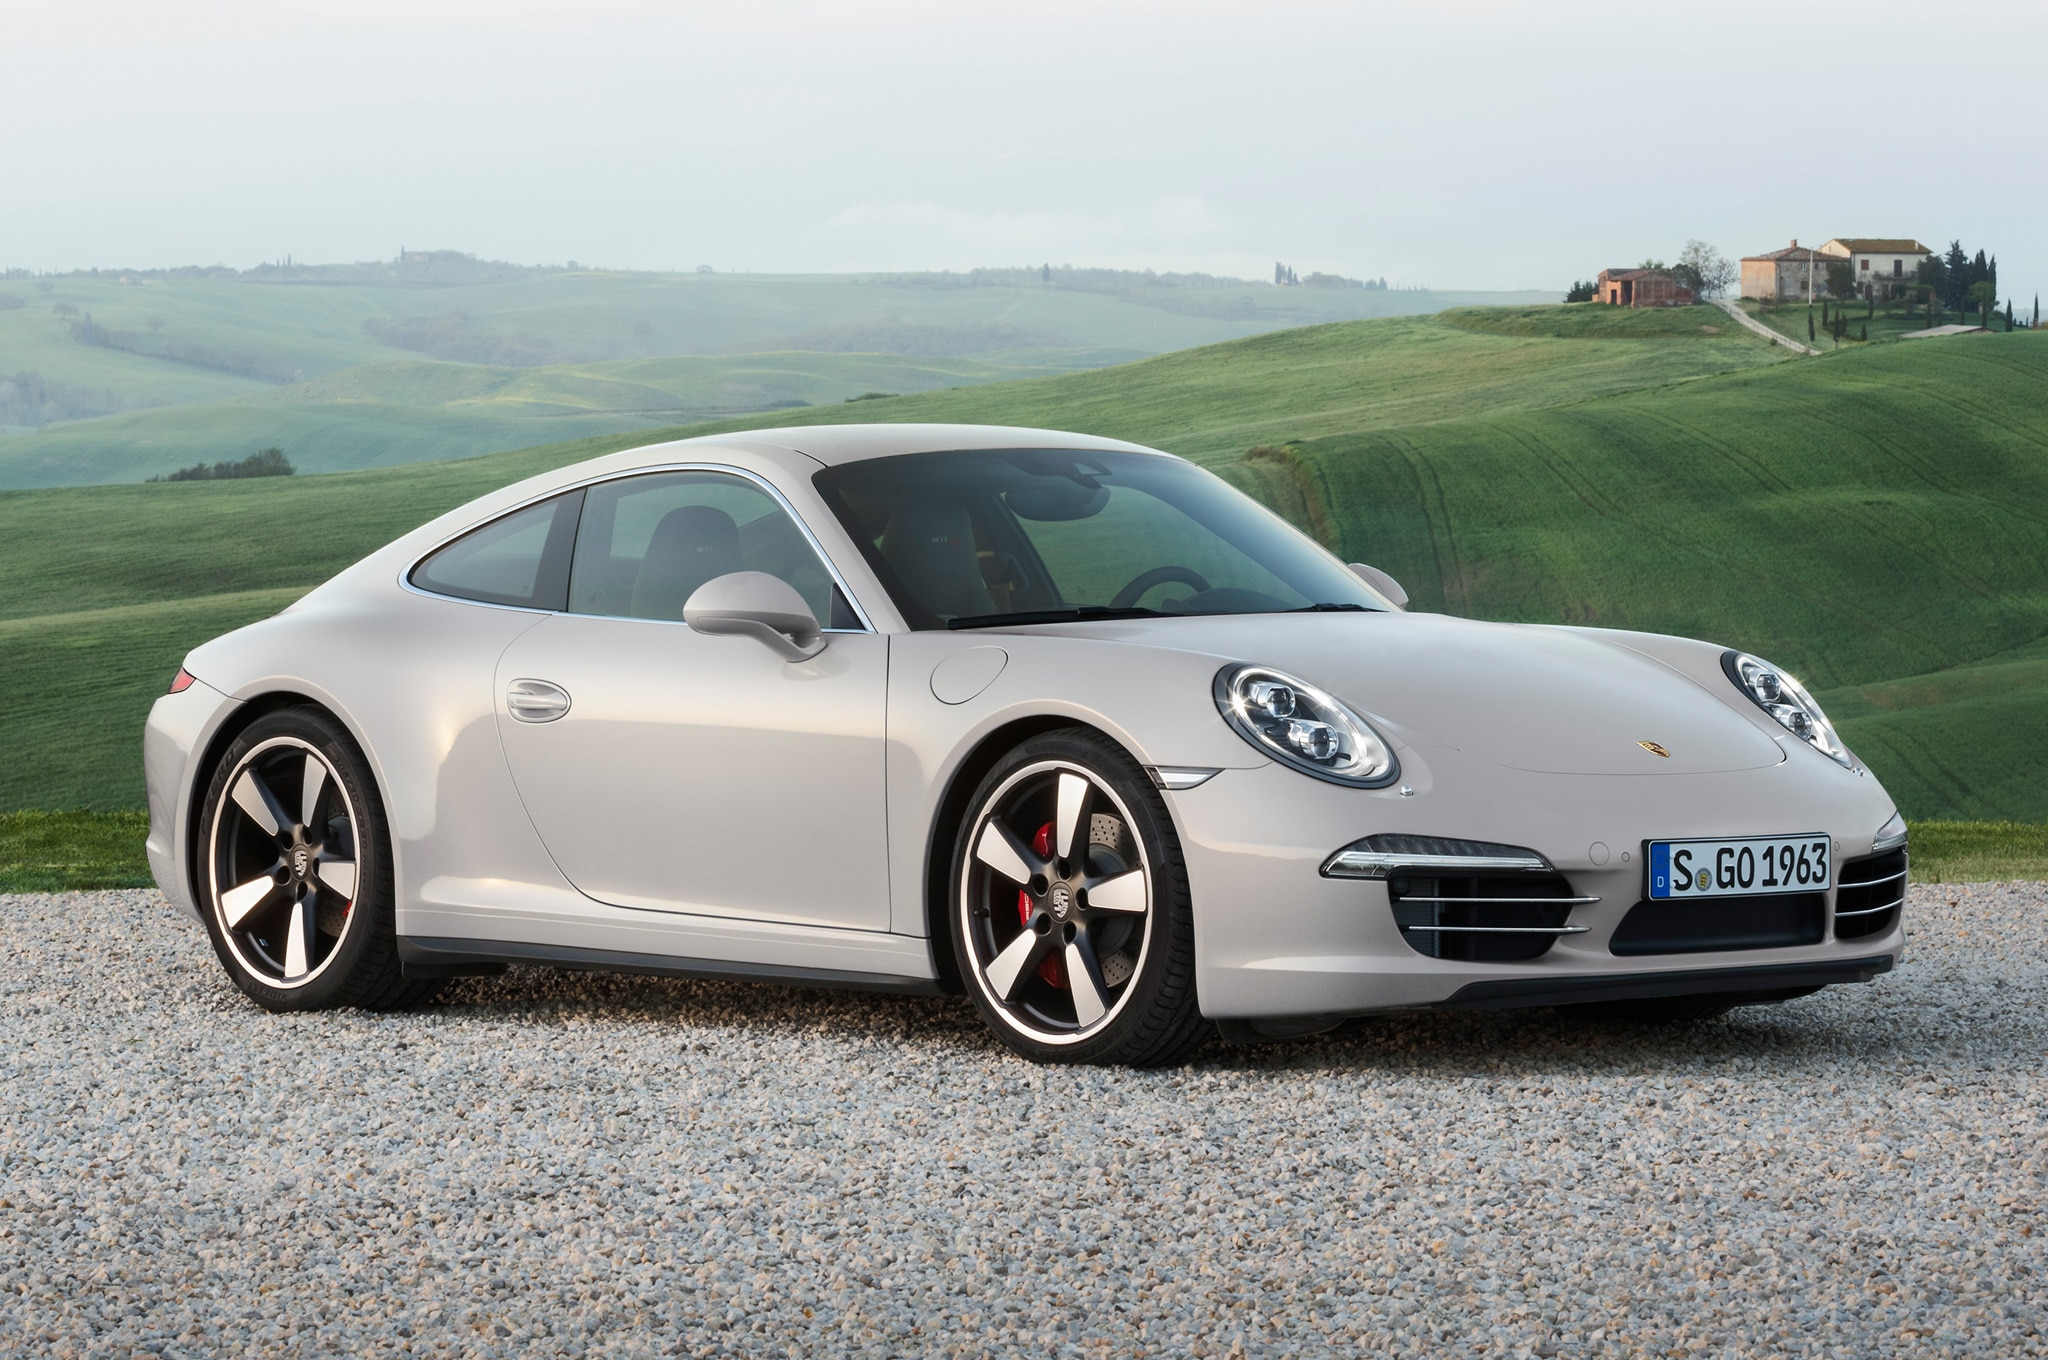 2013 Porsche 911 50th Anniversary Edition Front View12